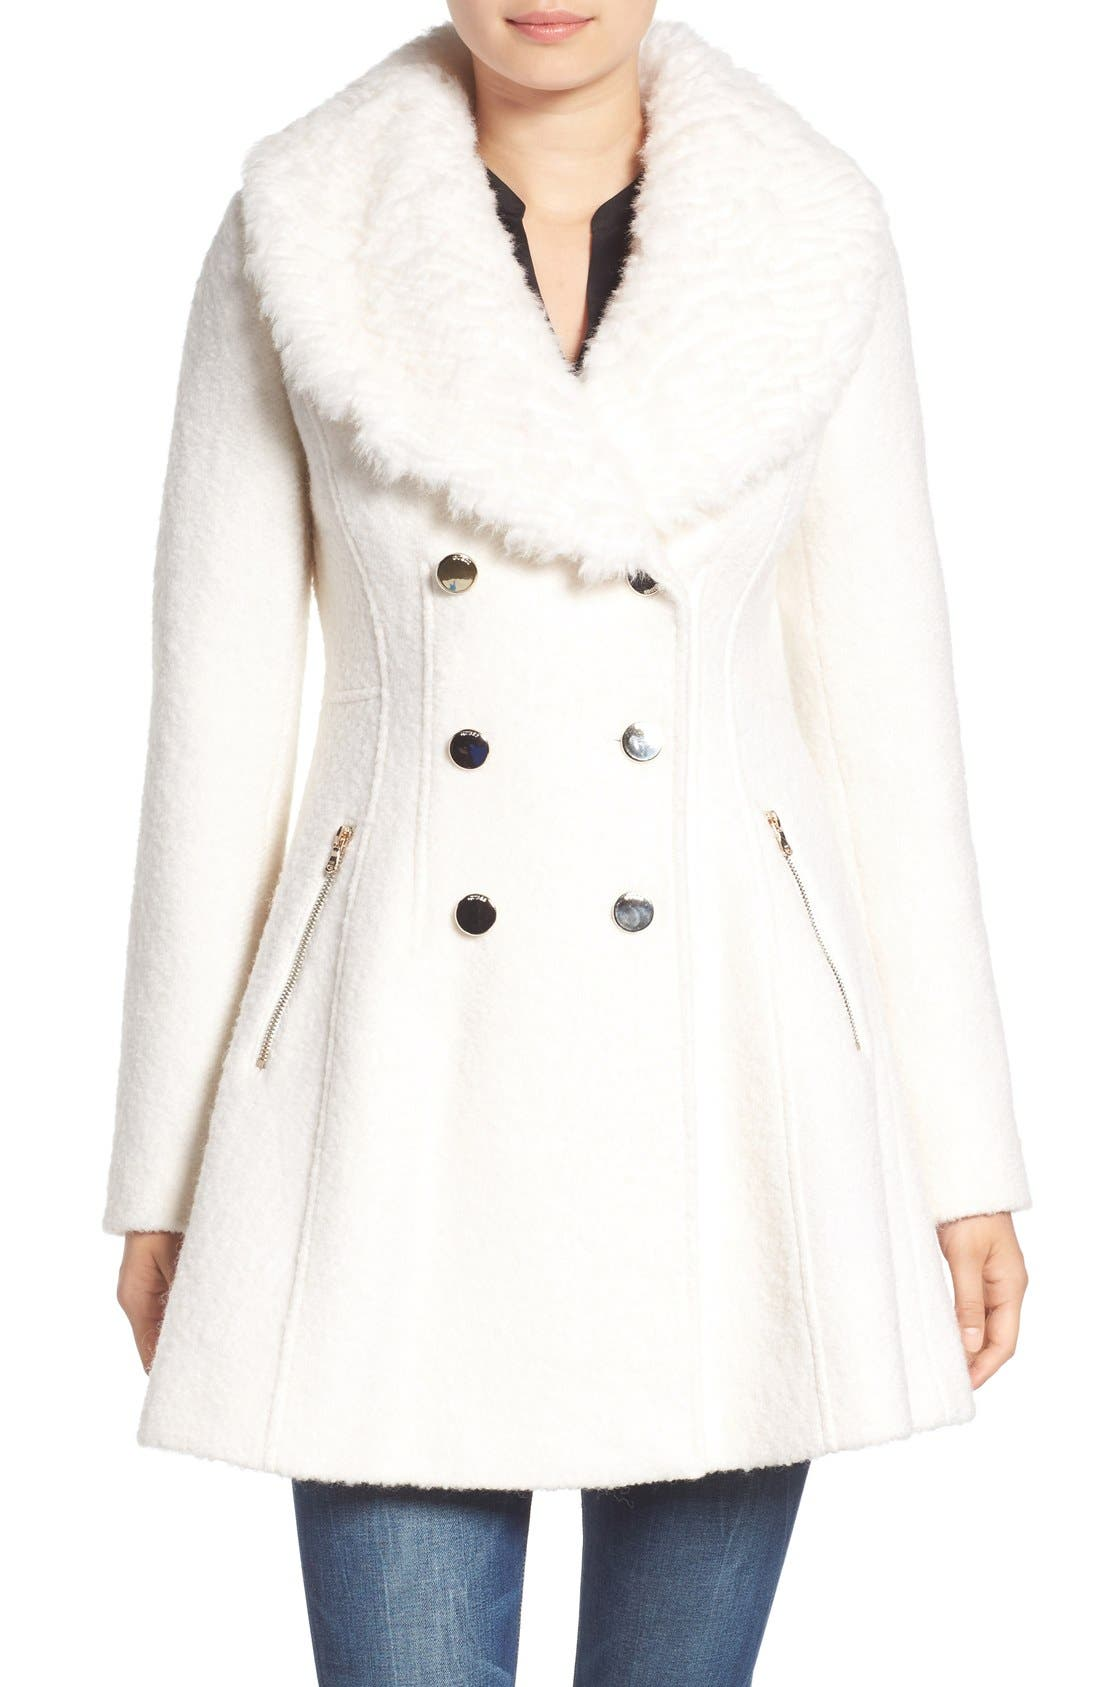 Alternate Image 1 Selected - GUESS Bouclé Fit & Flare Coat with Faux Fur Collar